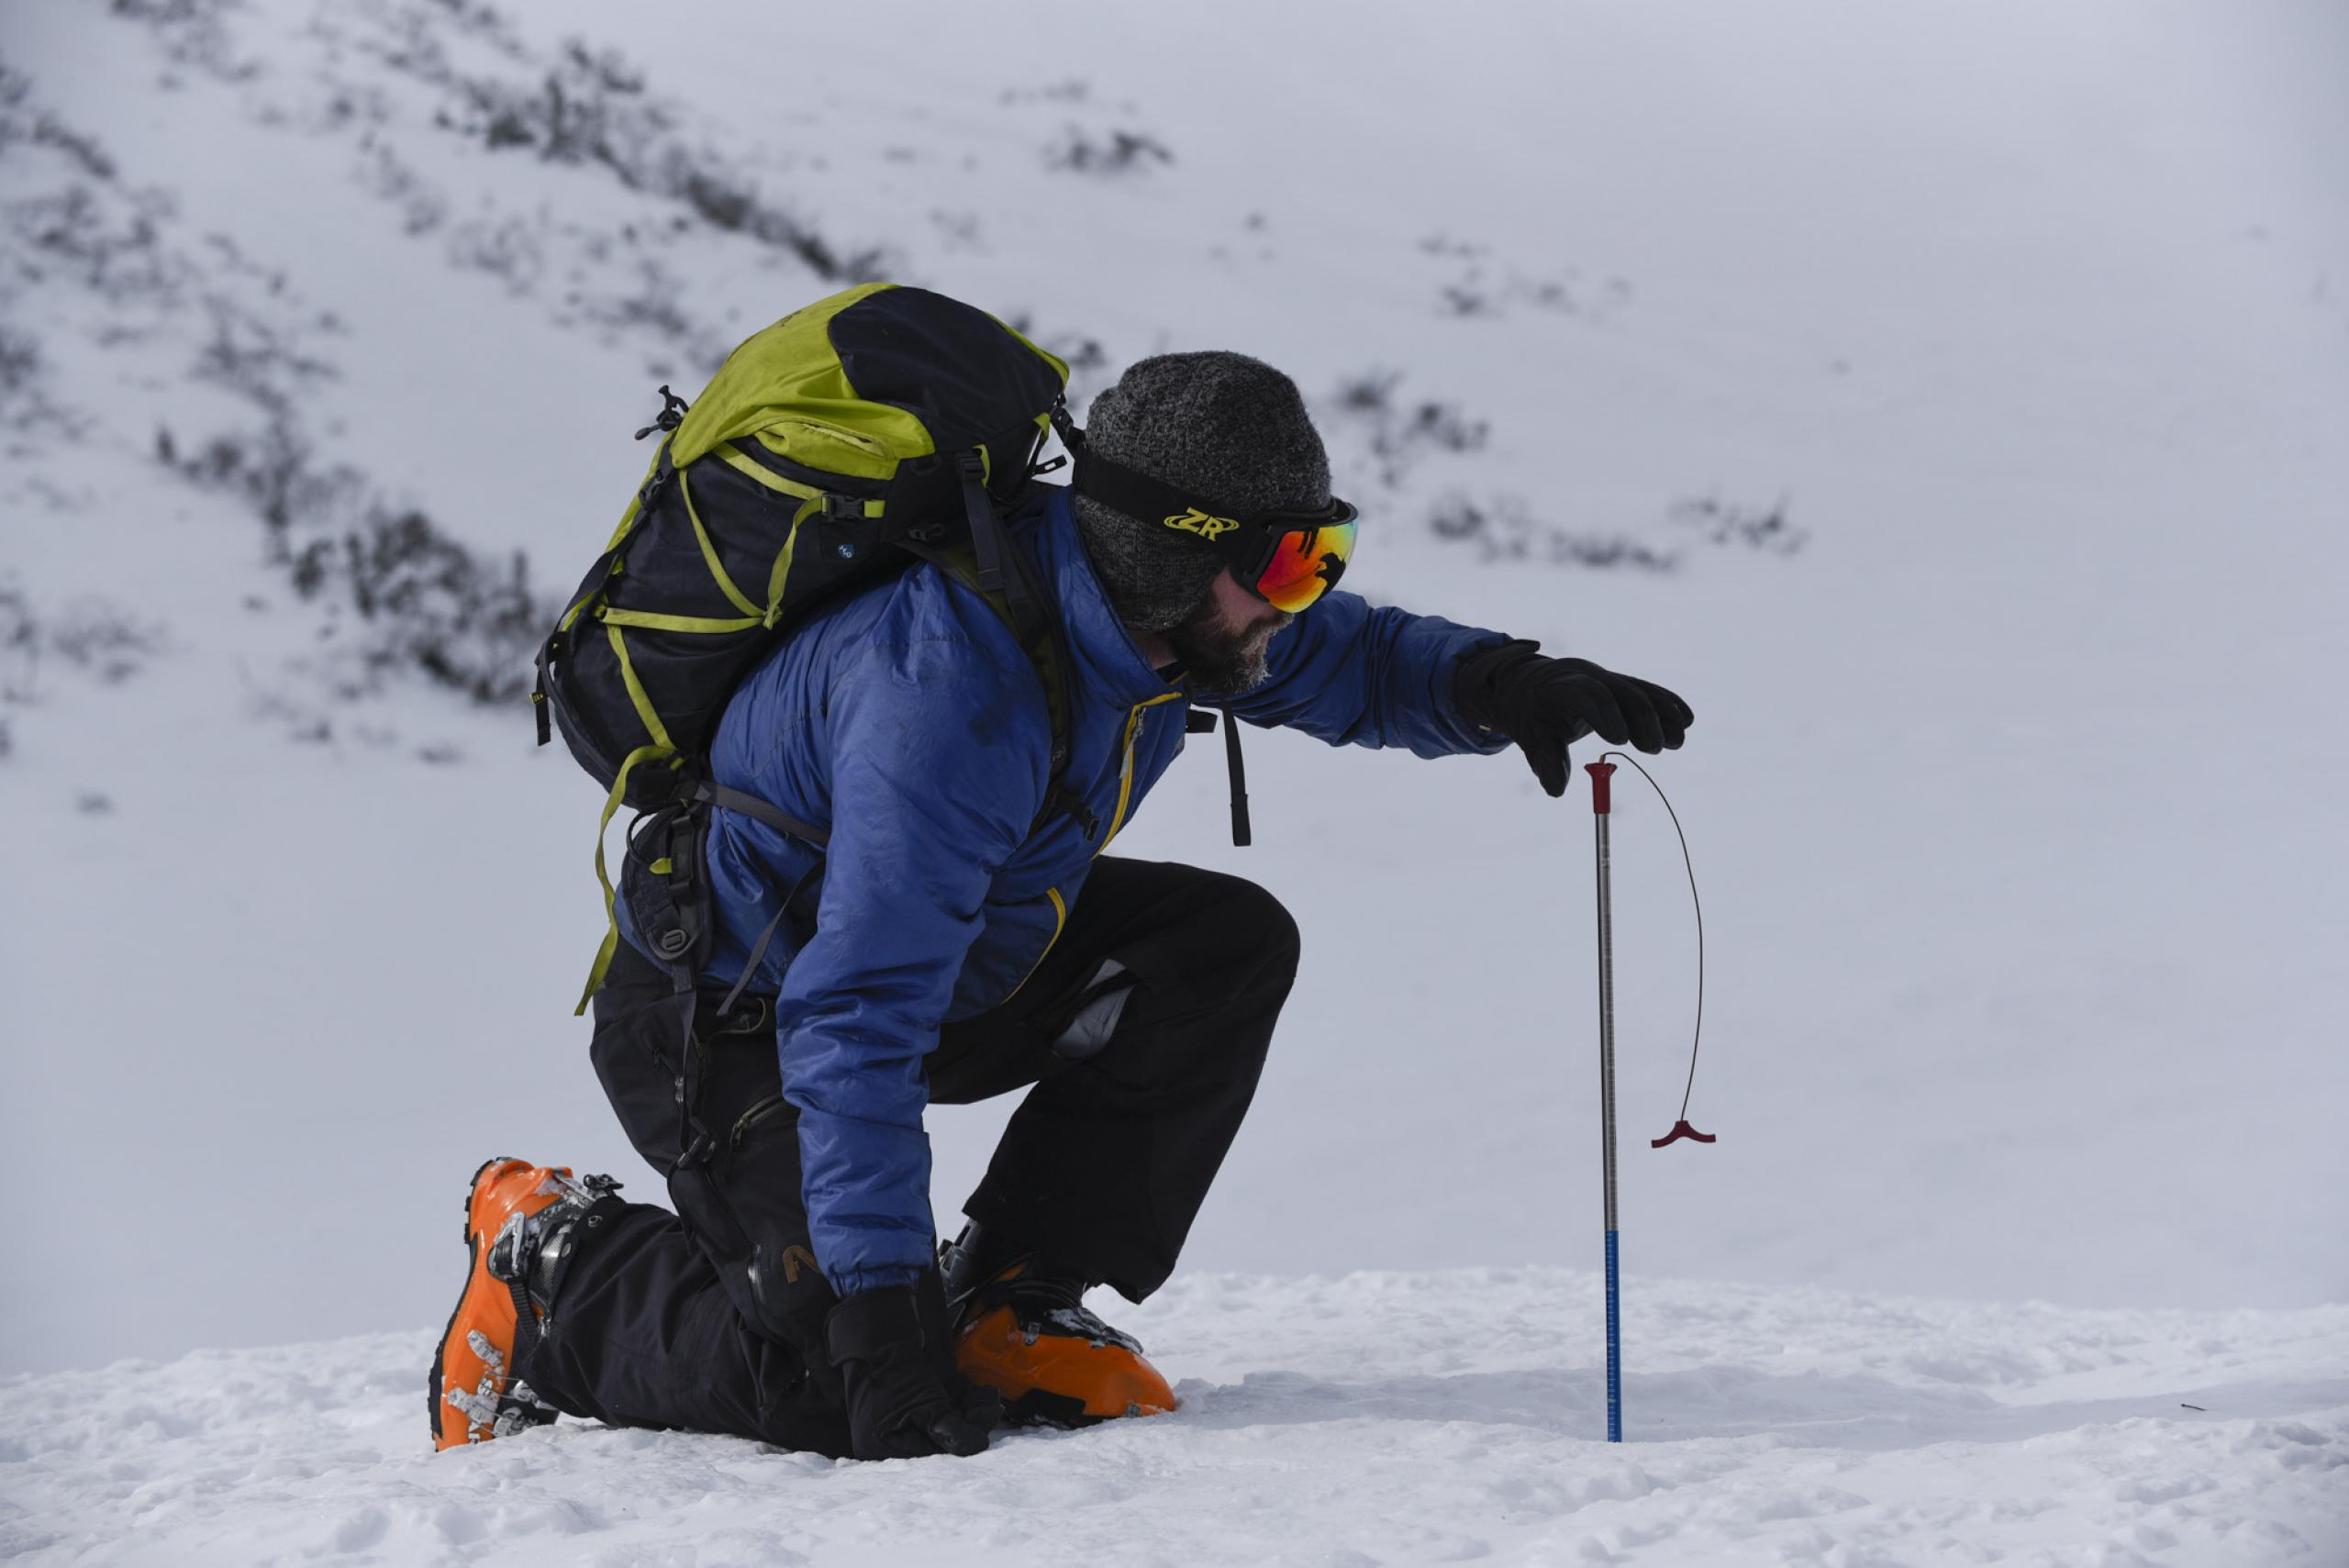 Ryan Crumley measures snow depth in the White Mountains of New Hampshire.